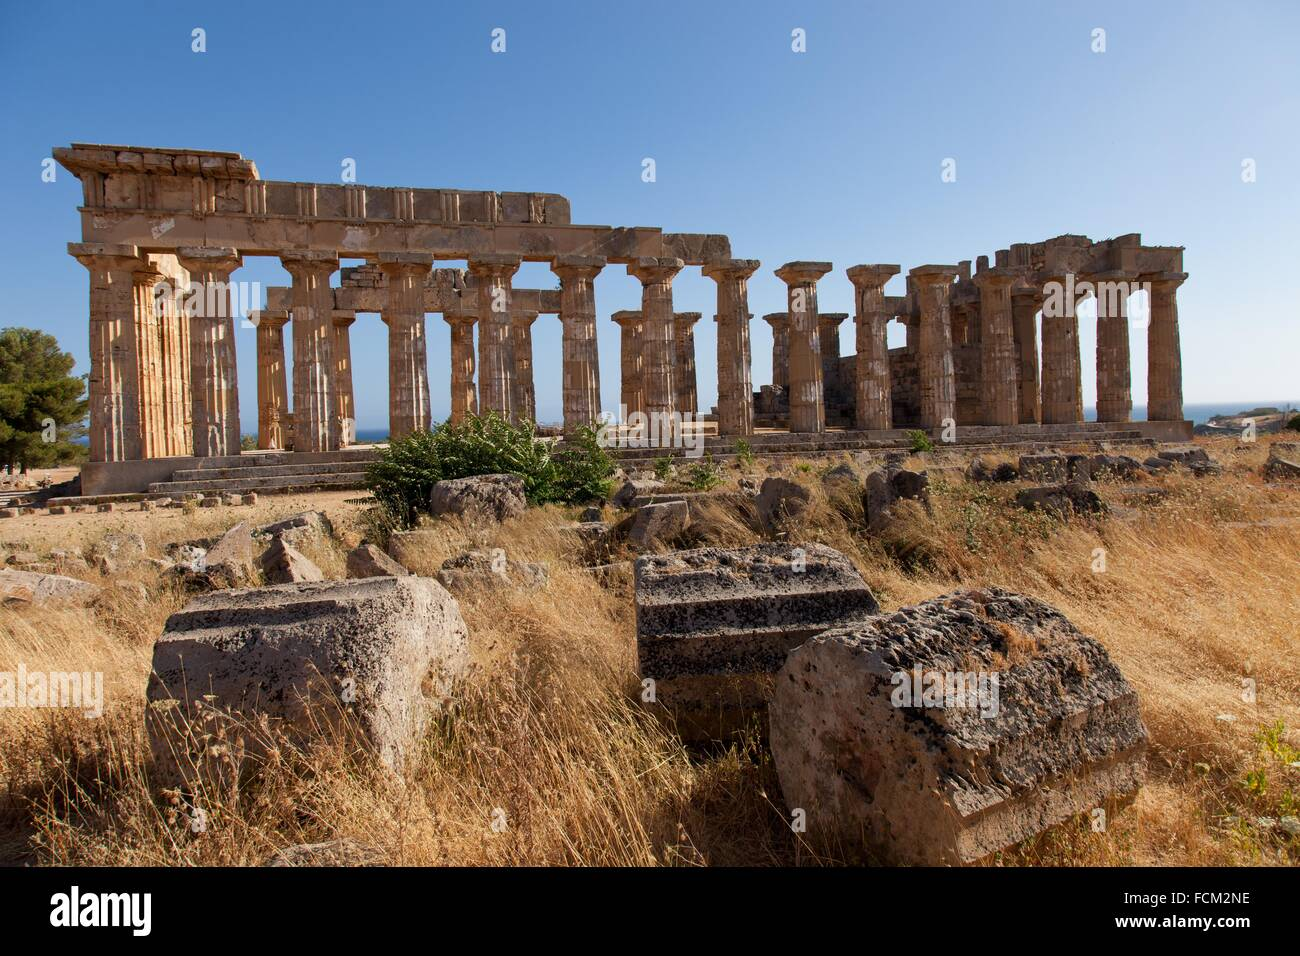 Temple of Hera at Selinunte, the ancient Greek city on the southern coast of Sicily, Italy, Europe. - Stock Image